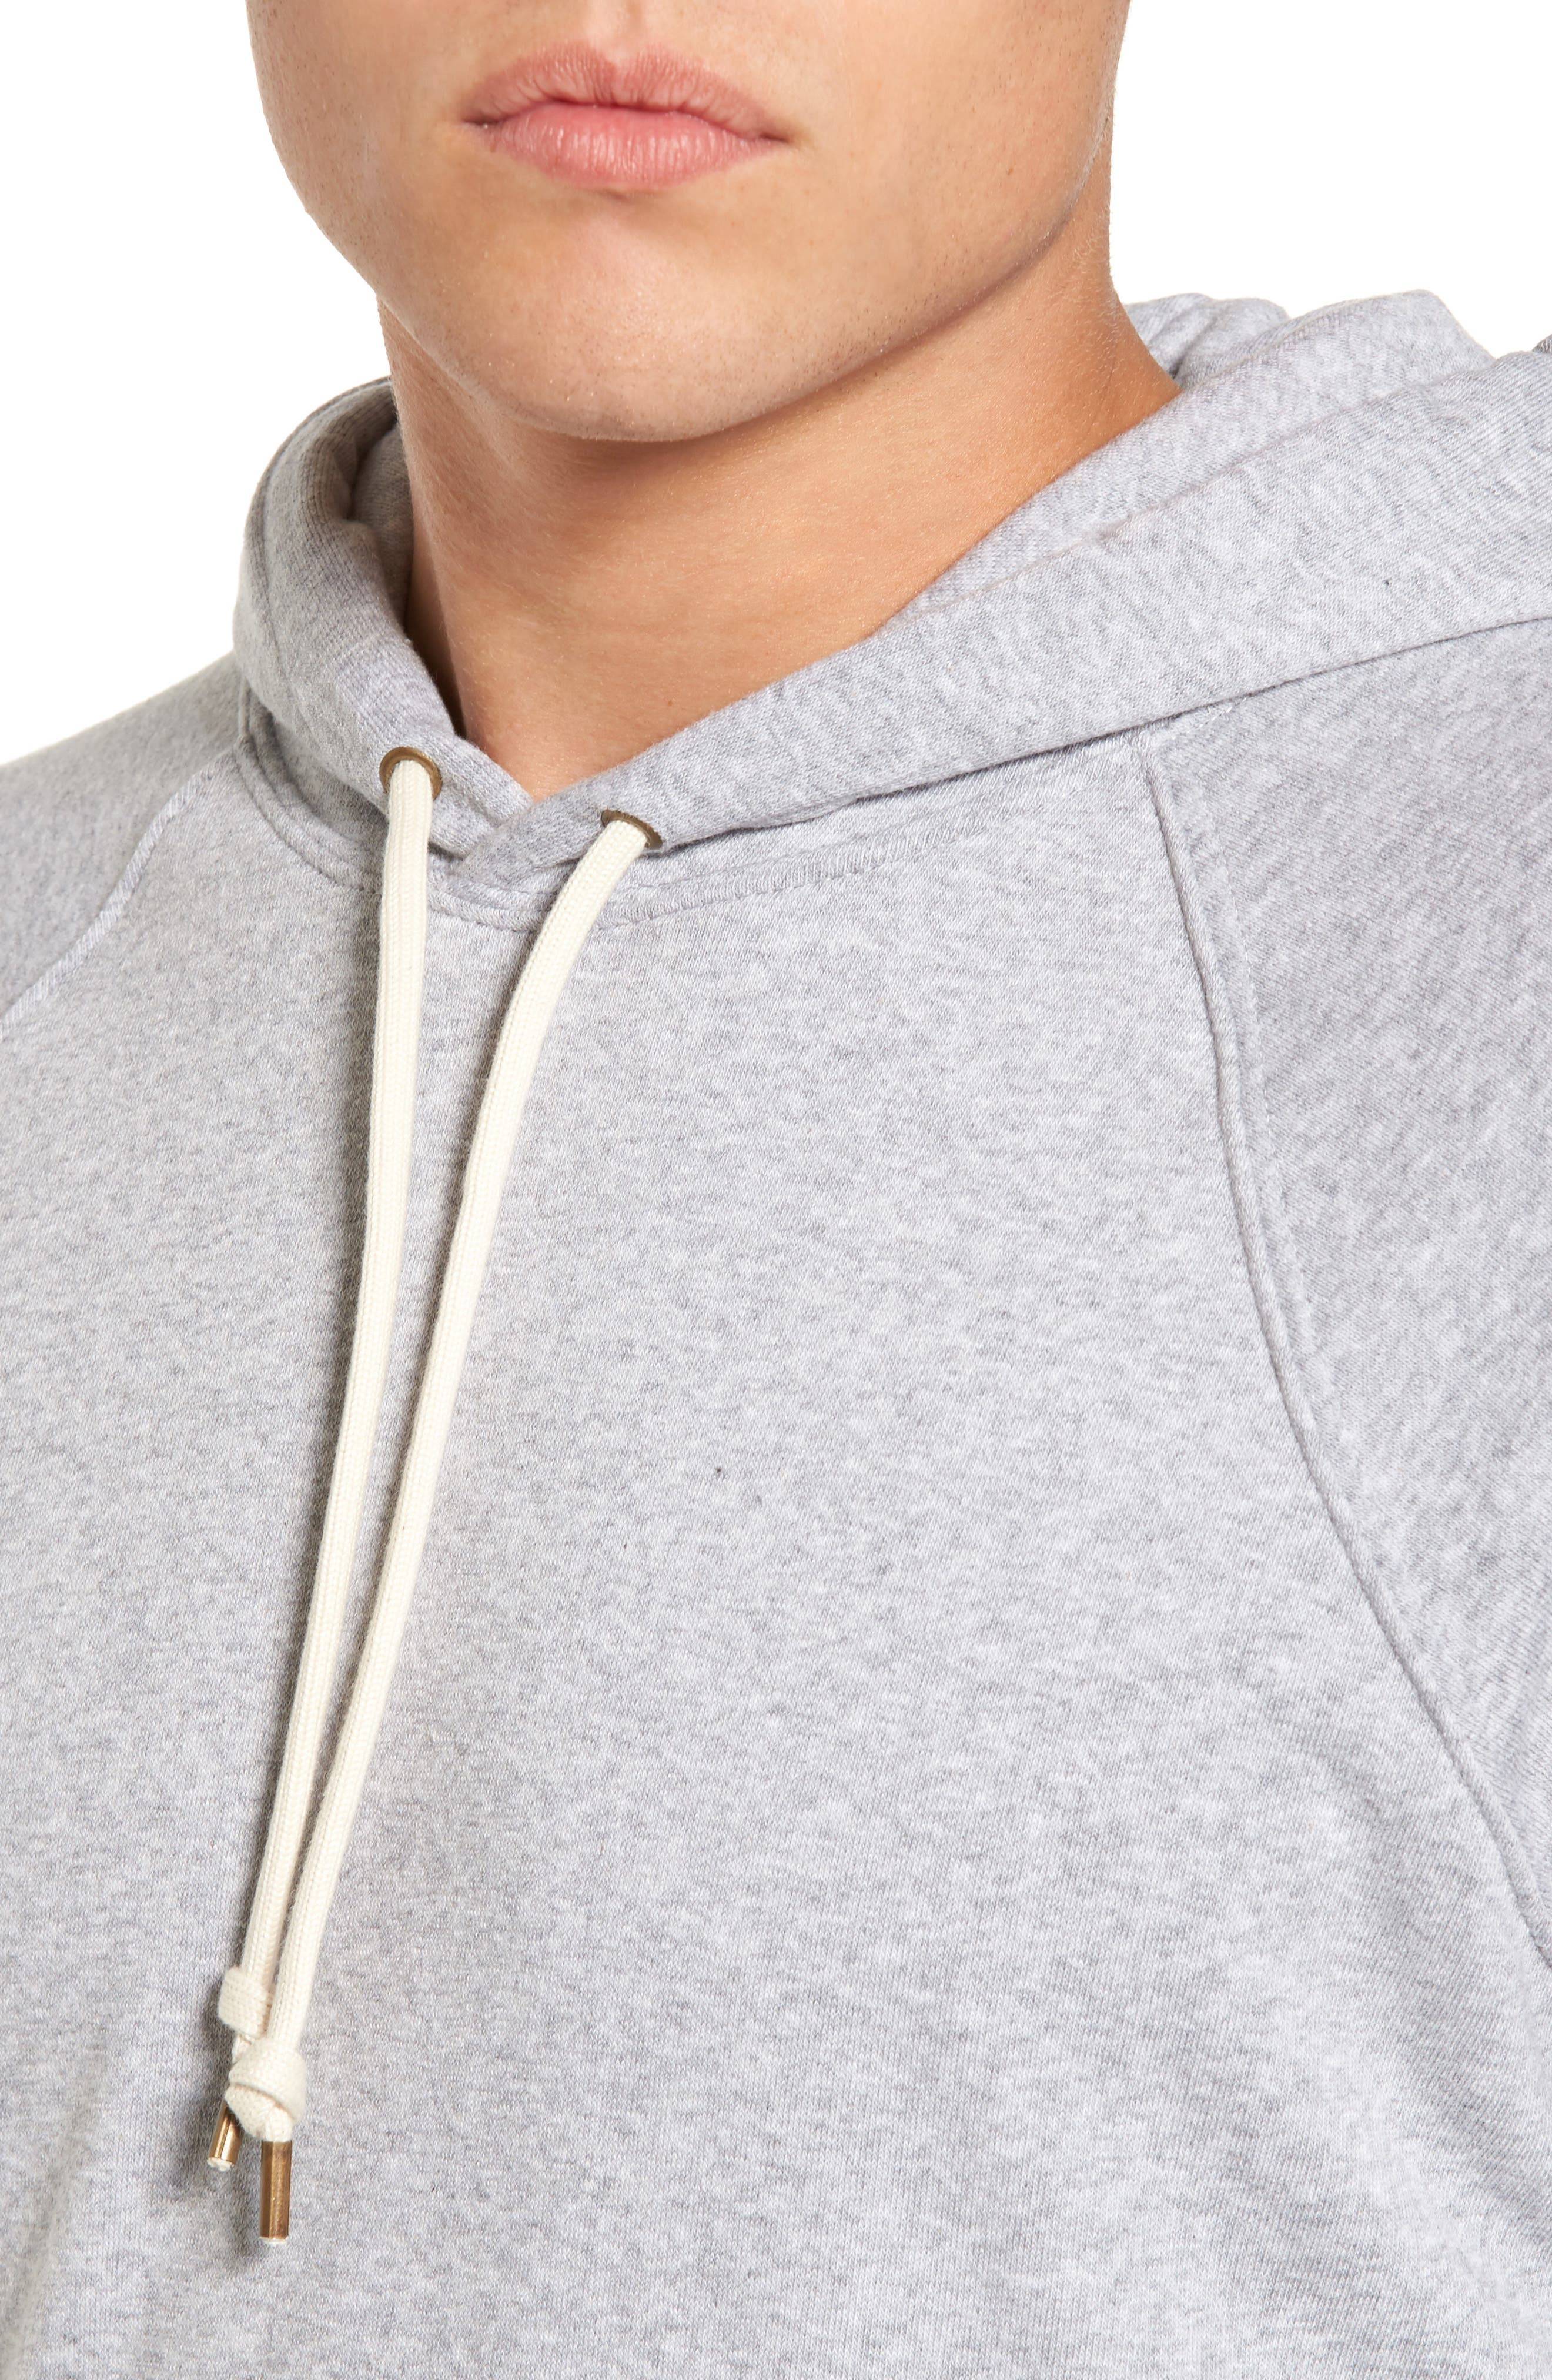 Lofty Creature Comforts Hoodie,                             Alternate thumbnail 4, color,                             061